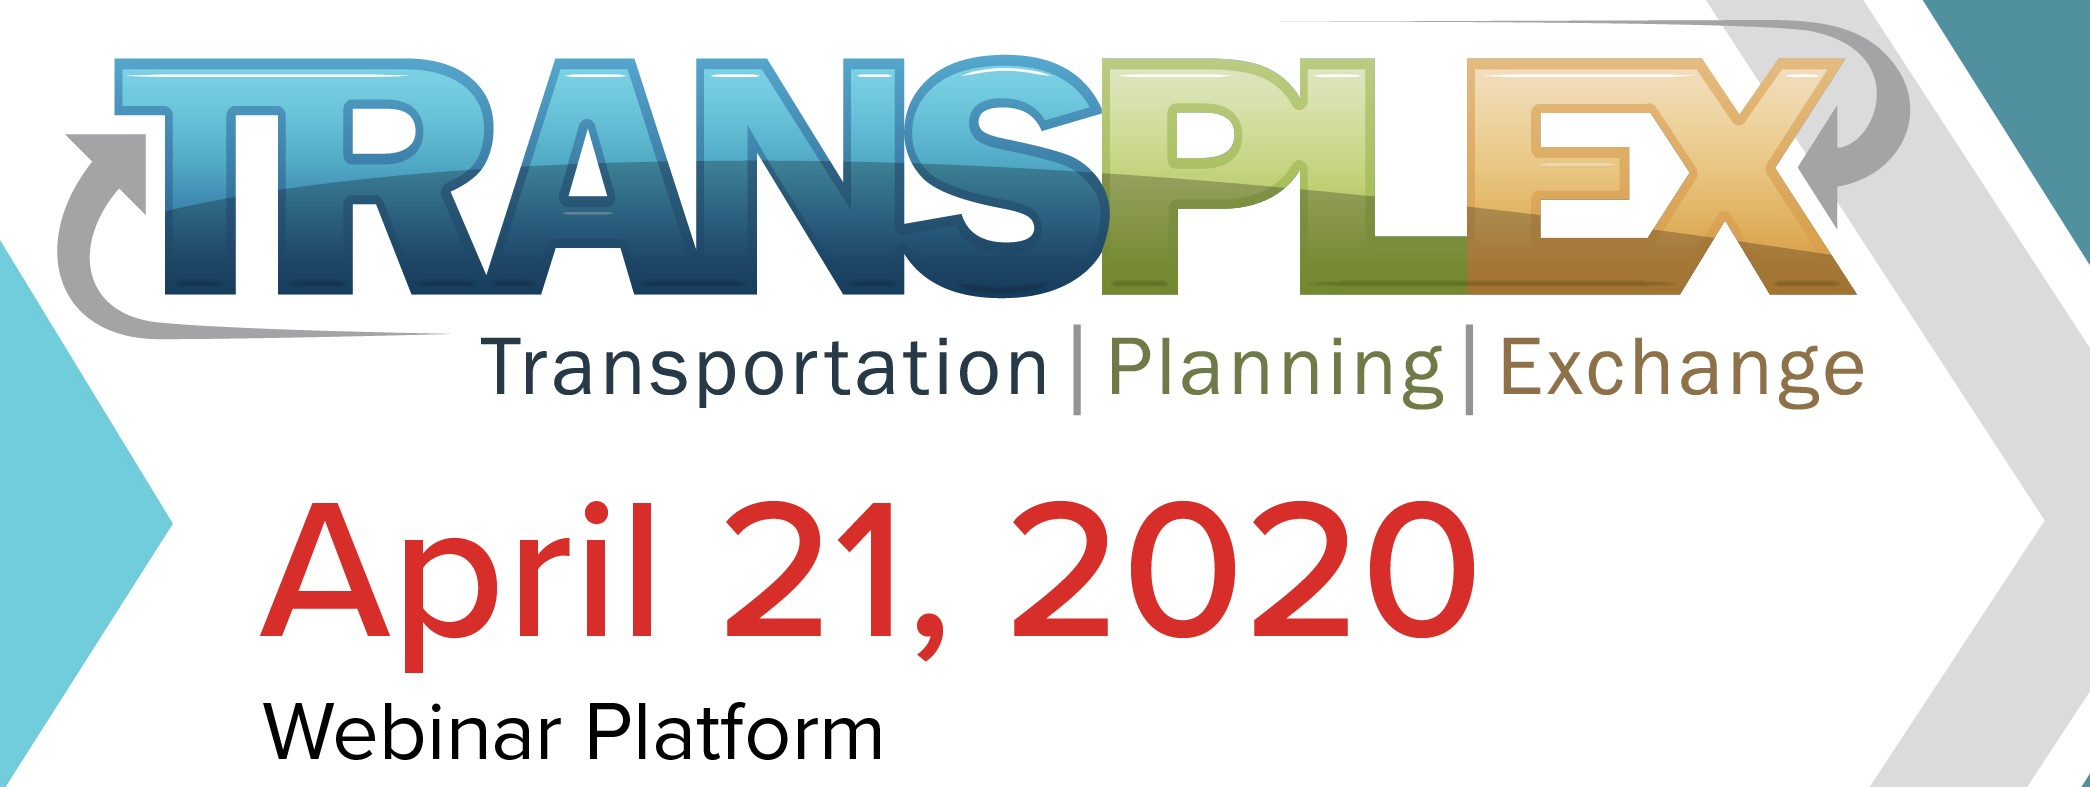 TRANSPLEX2020_RegistrationOpen_postcard_edited